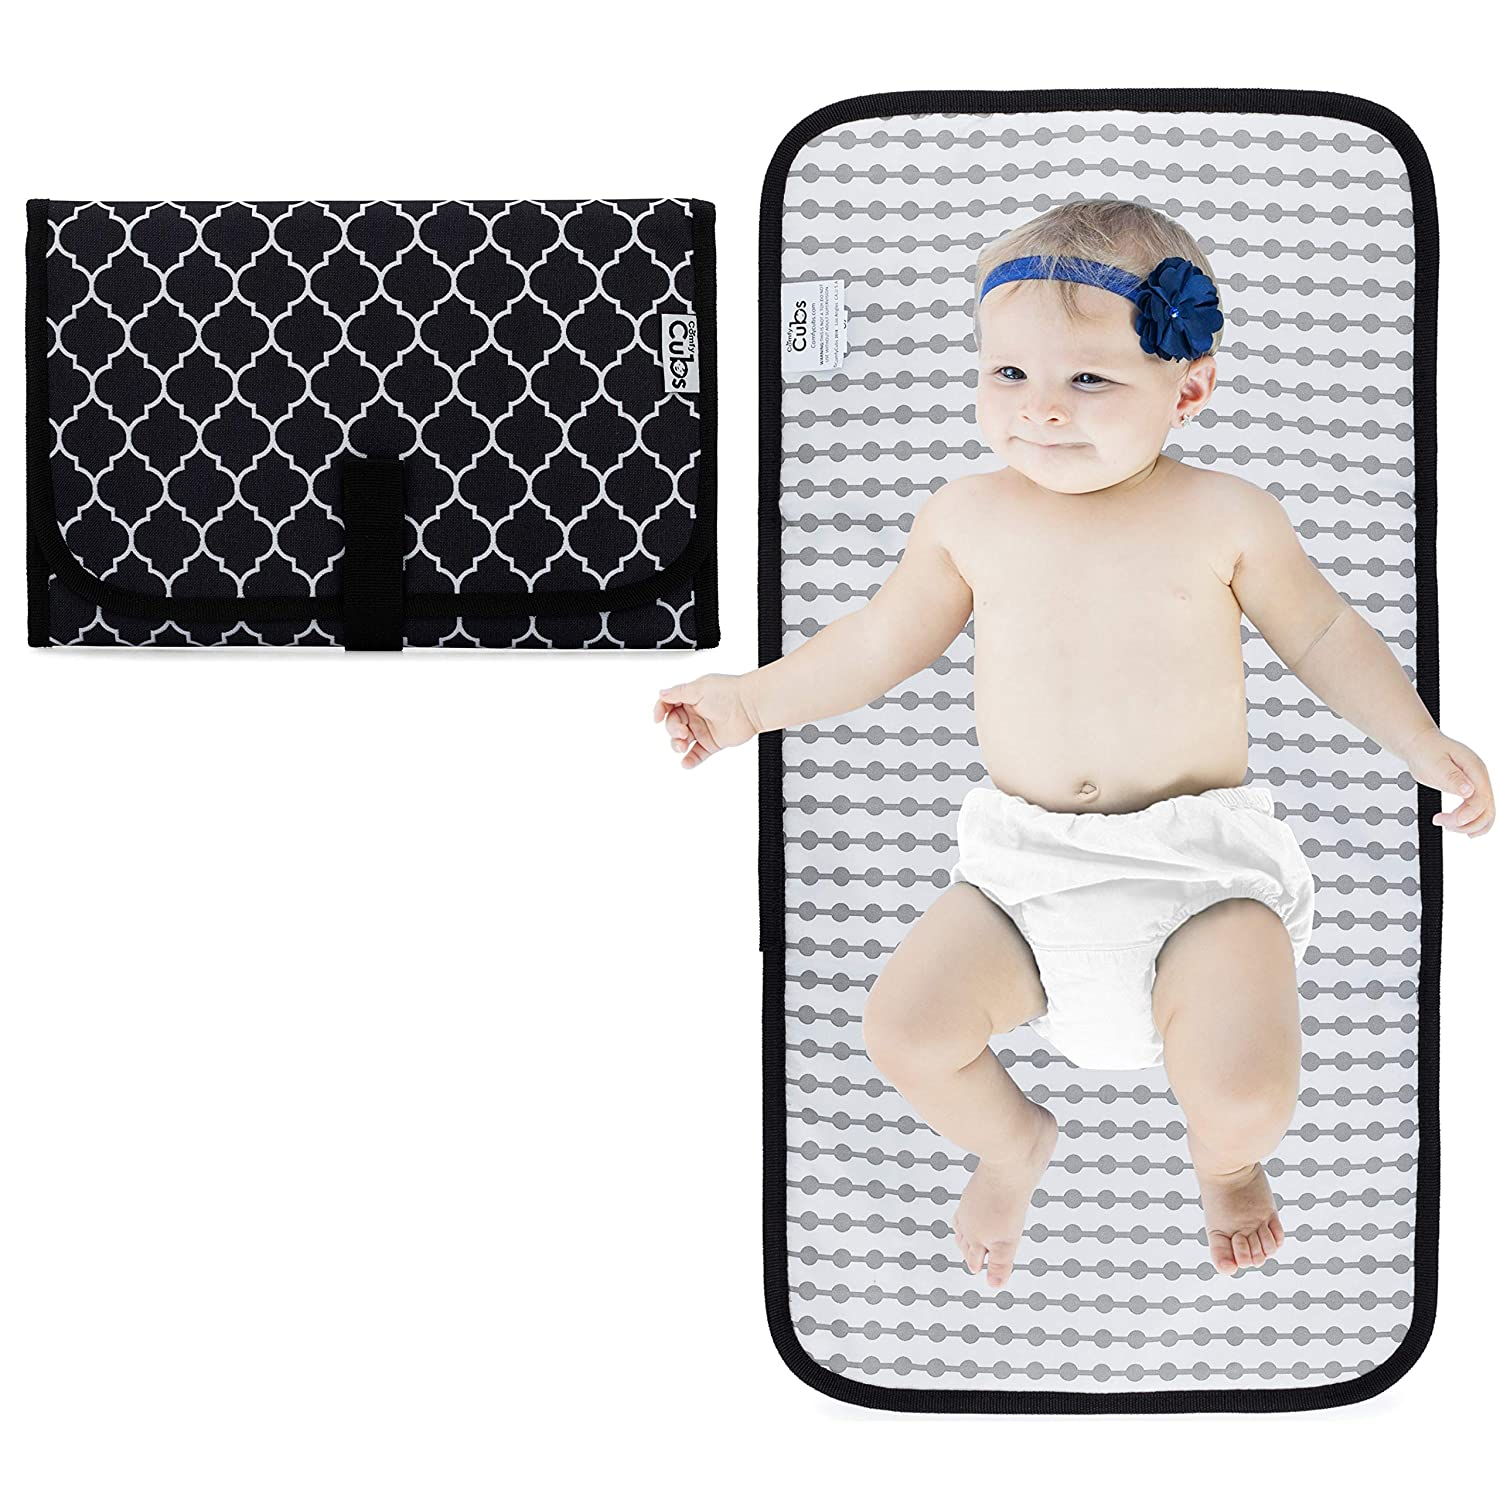 Baby Portable Changing Pad, Diaper Bag, Travel Mat Station, Grey Compact Comfy Cubs